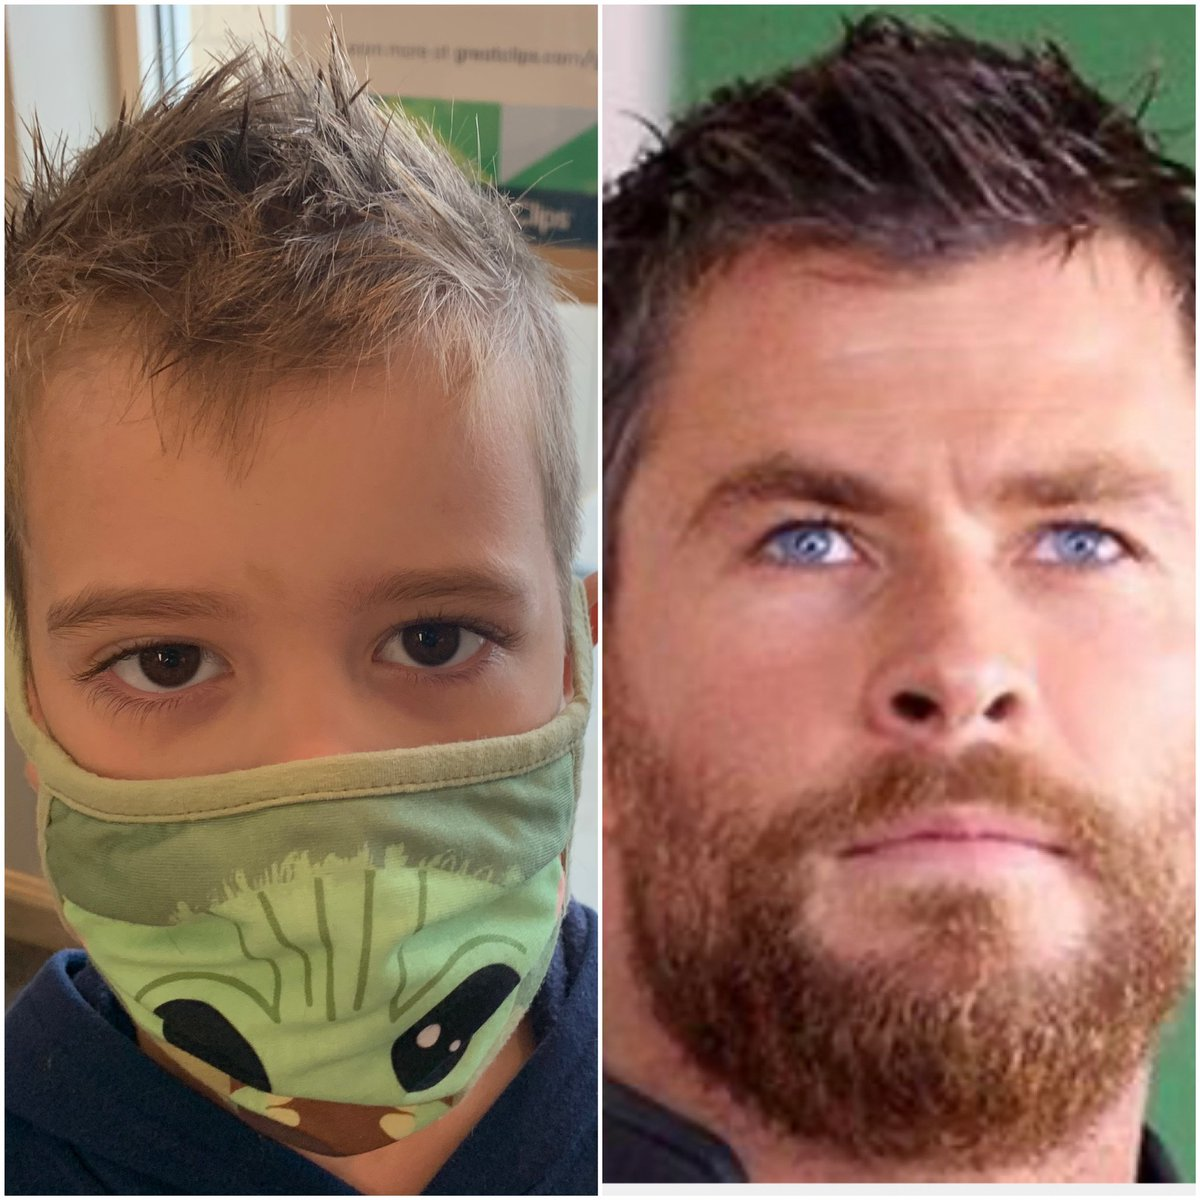 Boom On Twitter Babyboom Decided To Go With The Thor Ragnarok Hairstyle When We Went To Get Haircuts Yesterday